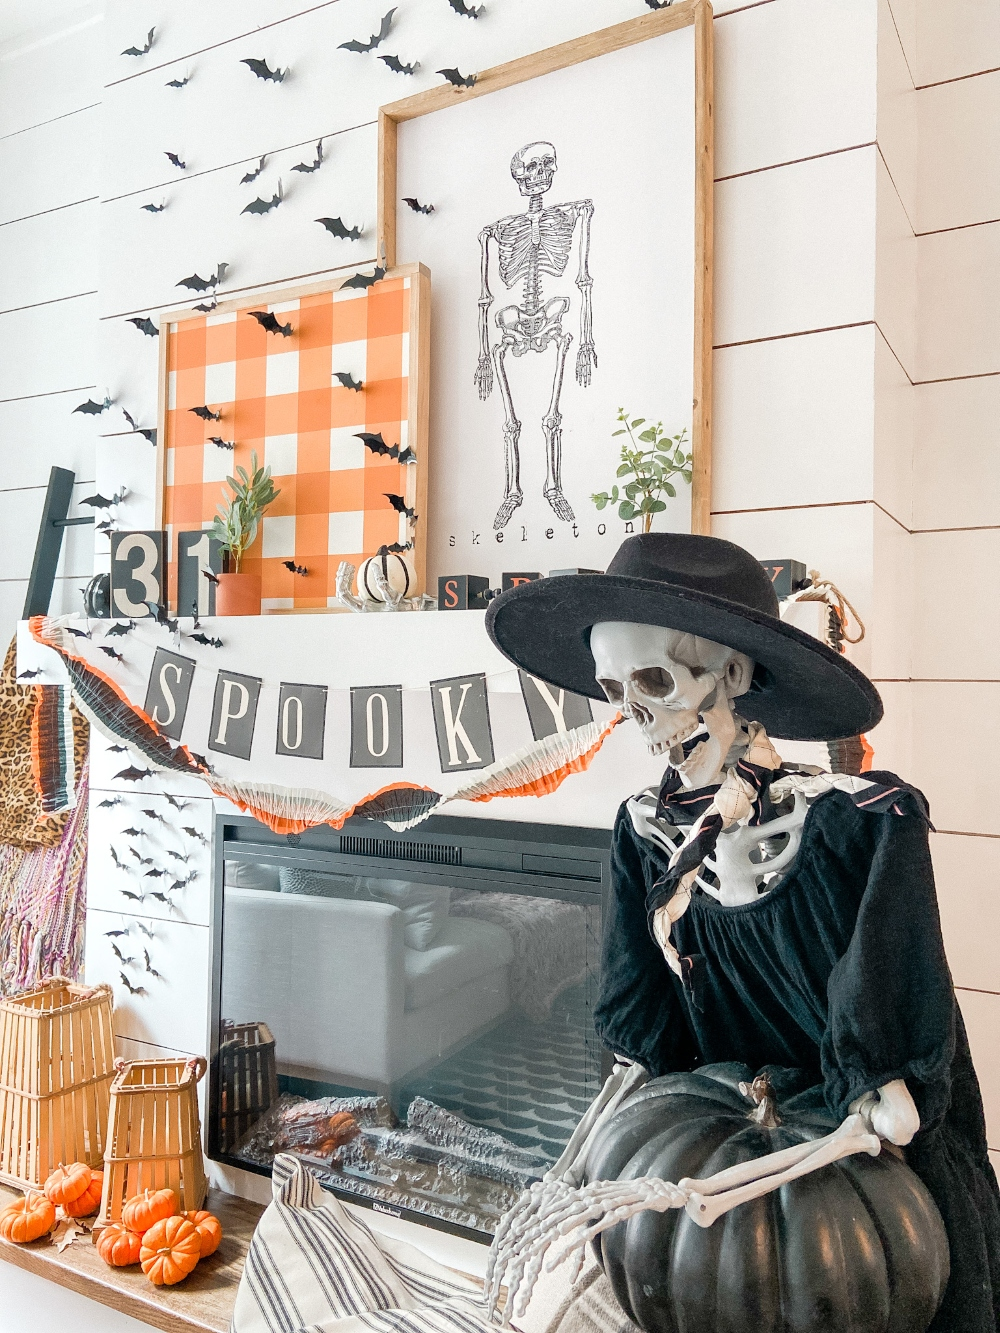 Spooky Halloween Decor and Mantel. Add some spooky charm to your home with these easy Halloween ideas!